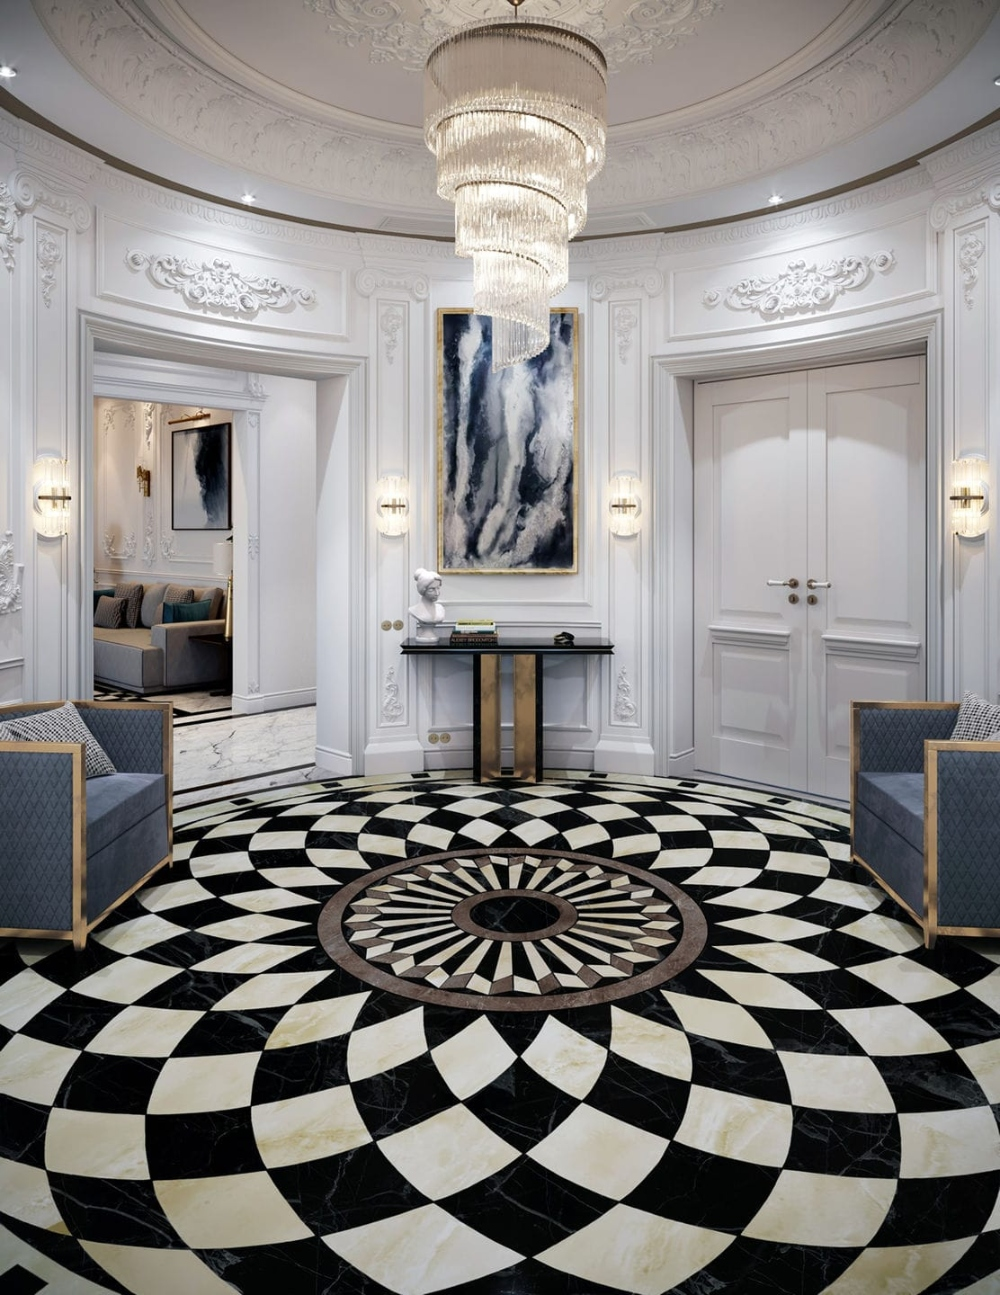 Interior Design Projects Neoclassical Palace in Riyadh by Comelite Architecture 2 (7) interior design projects Interior Design Projects: Neoclassical Palace in Riyadh by Comelite Architecture Interior Design Projects Neoclassical Palace in Riyadh by Comelite Architecture 2 7